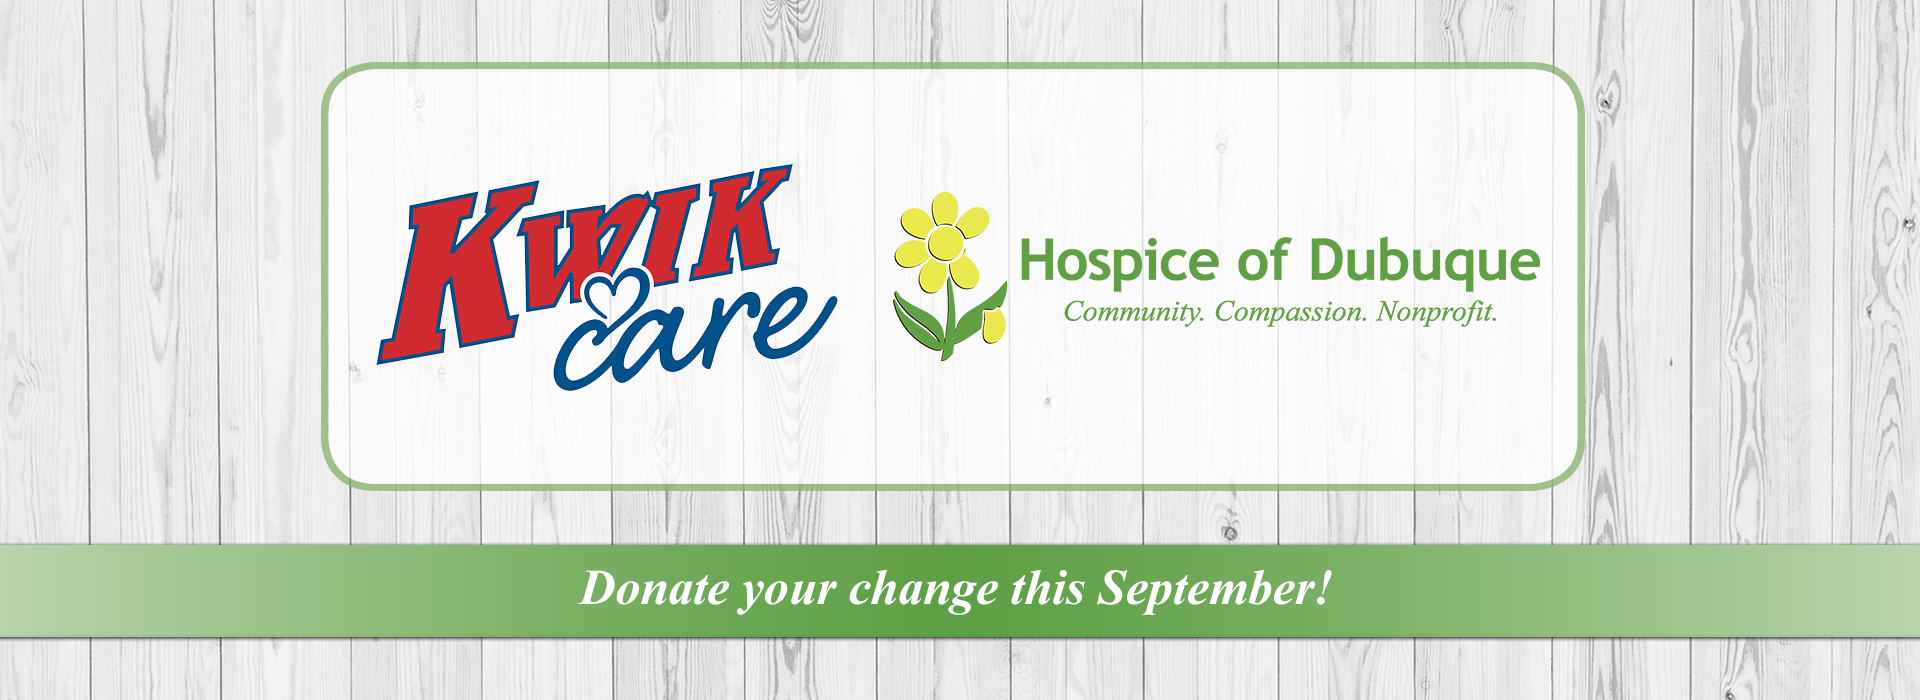 Kwik Stop Canisters for Hospice of Dubuque